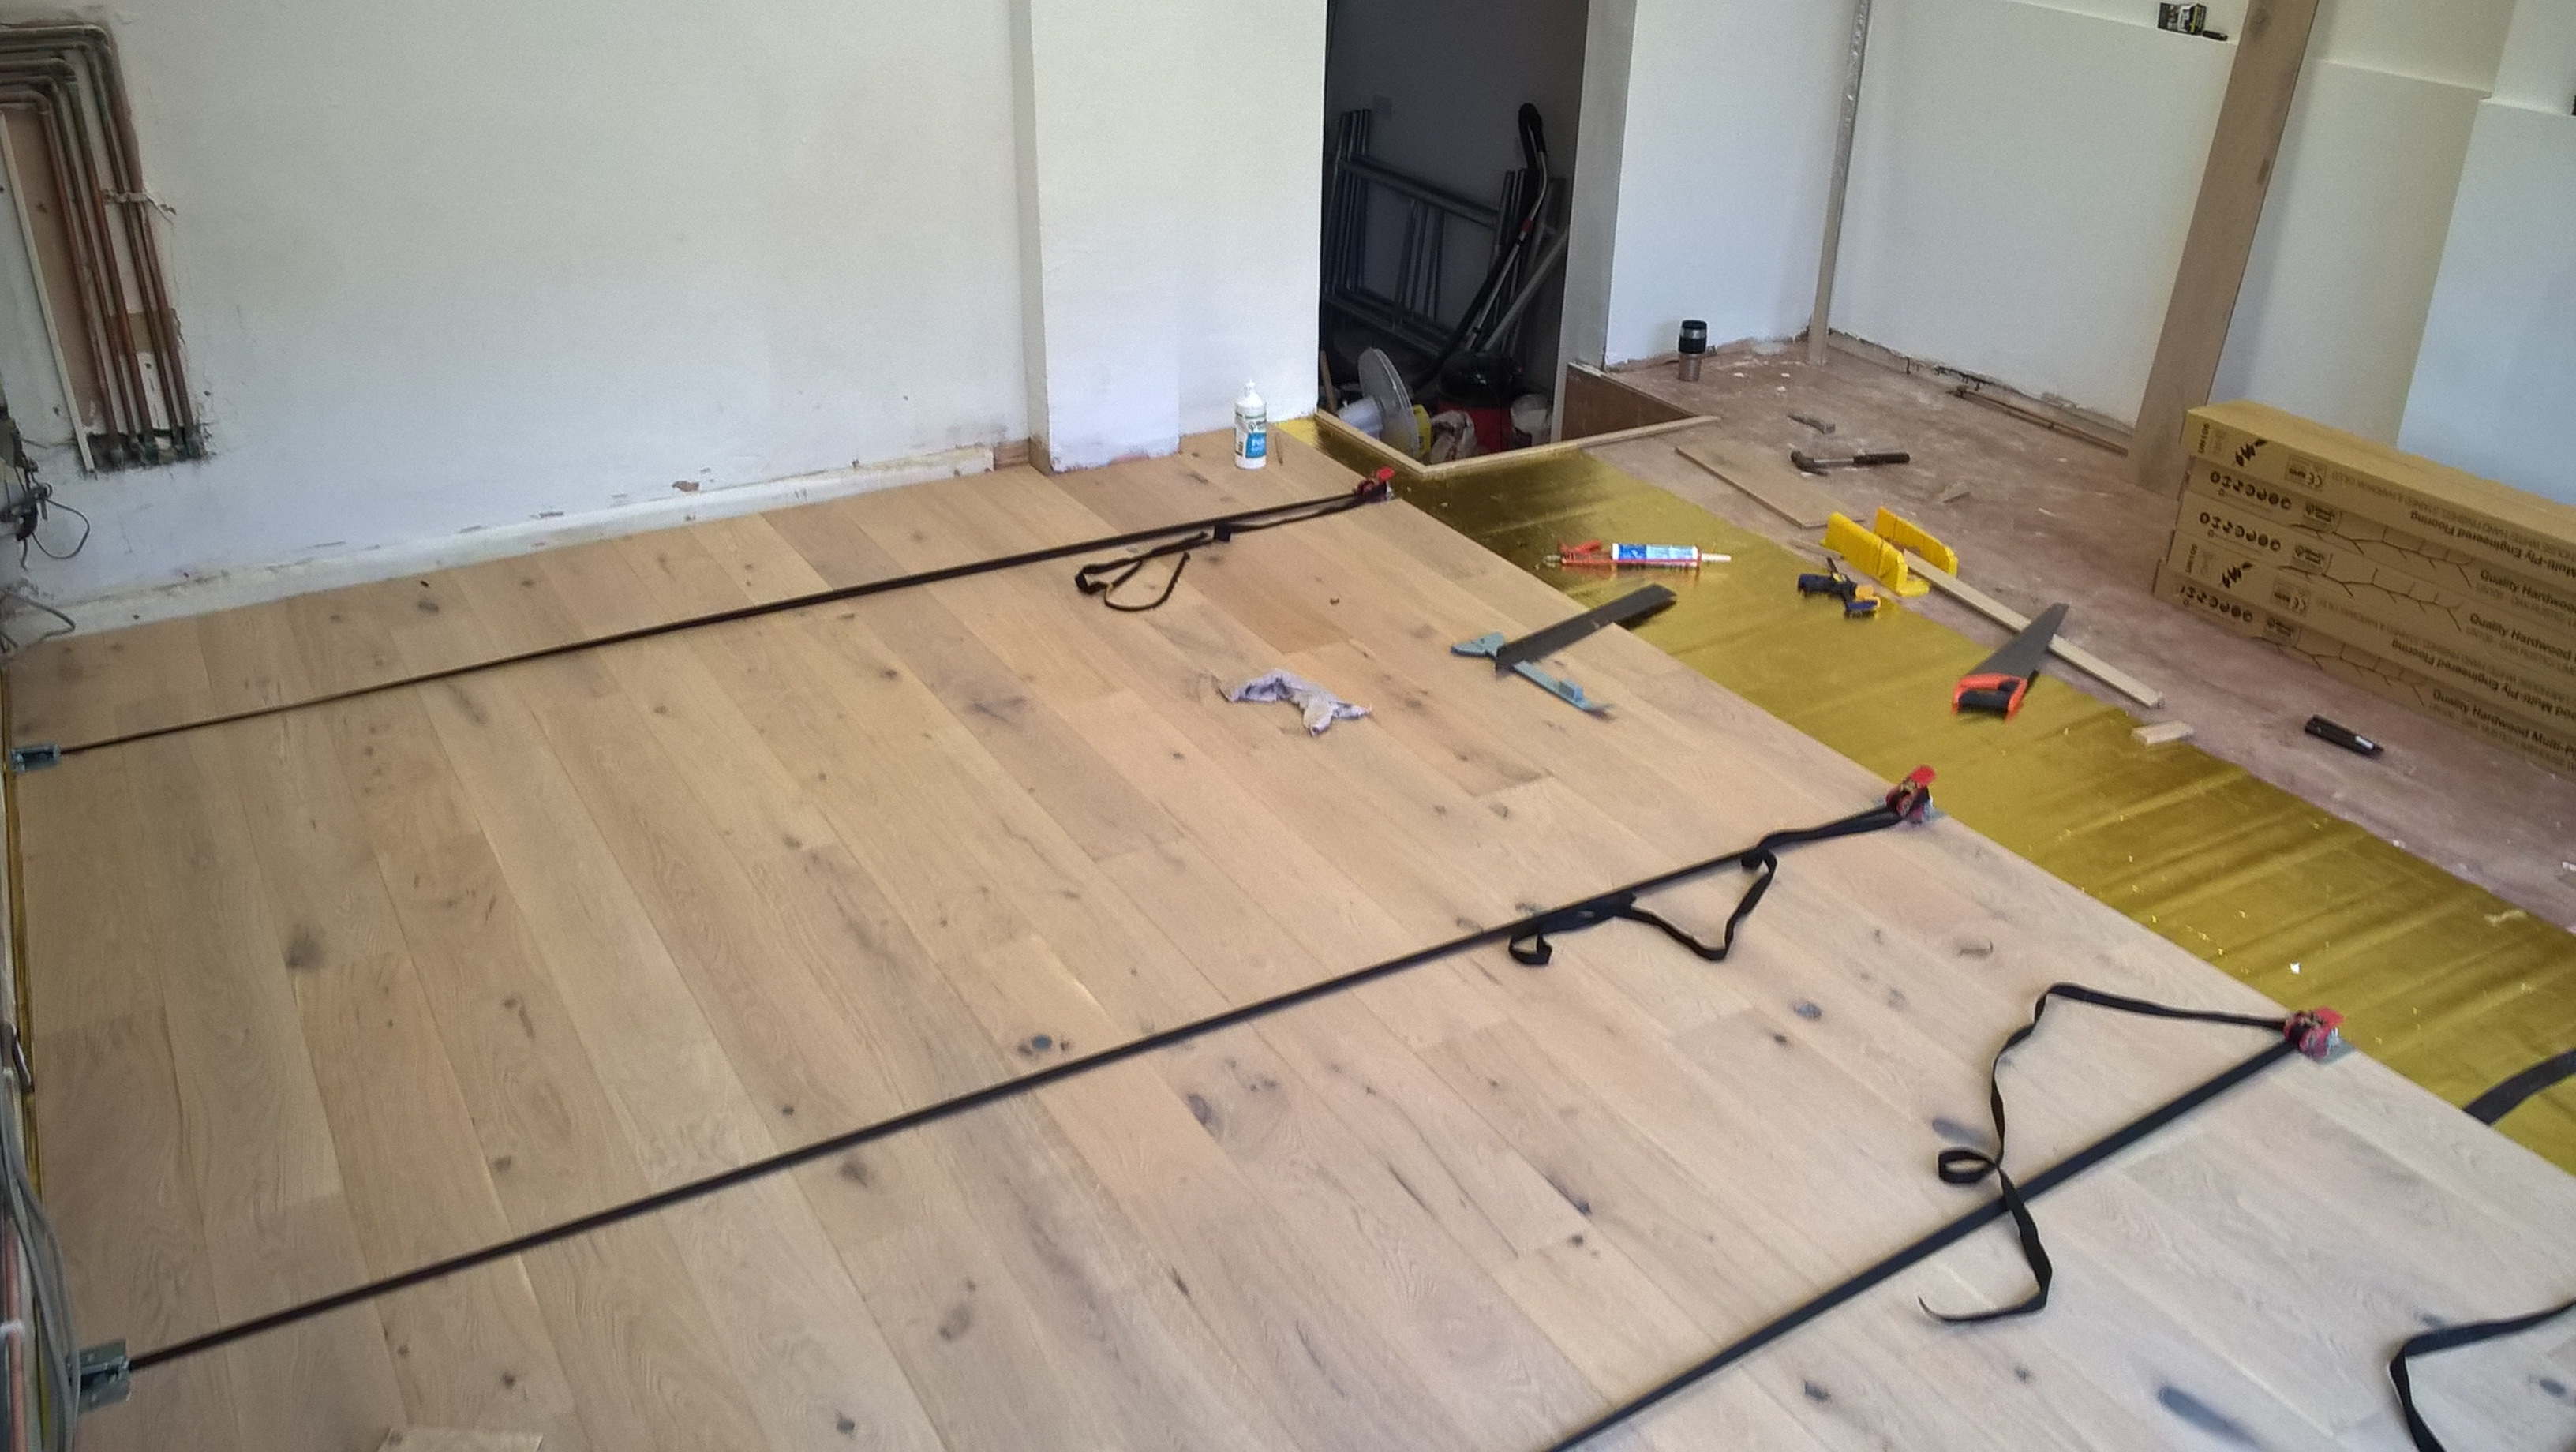 Solid wood flooring strapped together